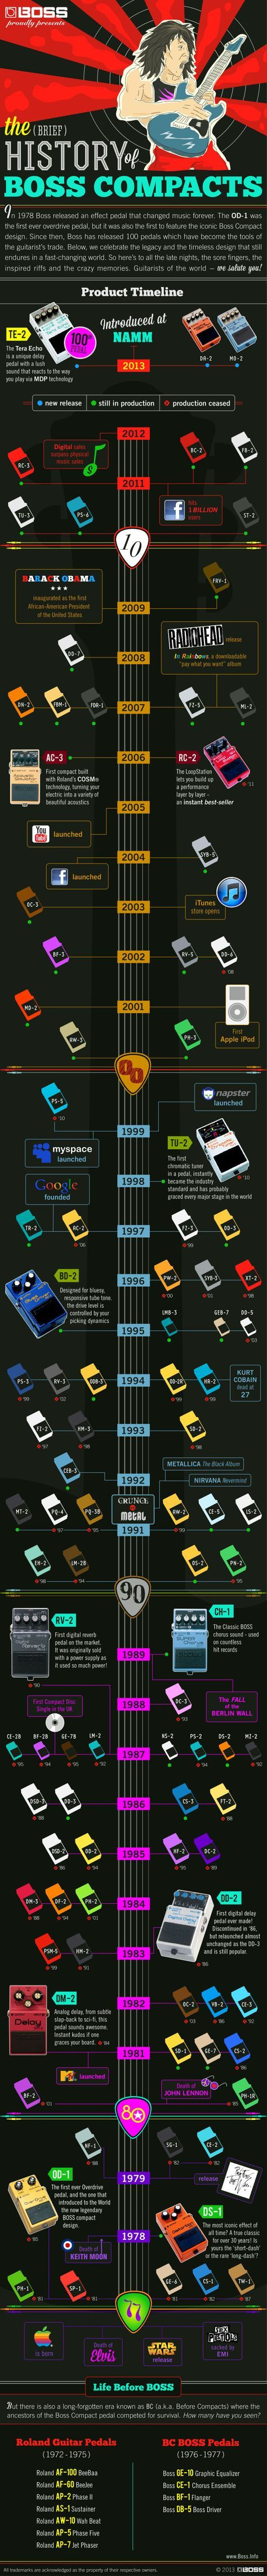 38 Best Guitar Pedals Images On Pinterest Effects Bbe Wah Class A Circuit Design Pedal Icon Music The History Of Boss Compact Good To See What 1977 Gave Us